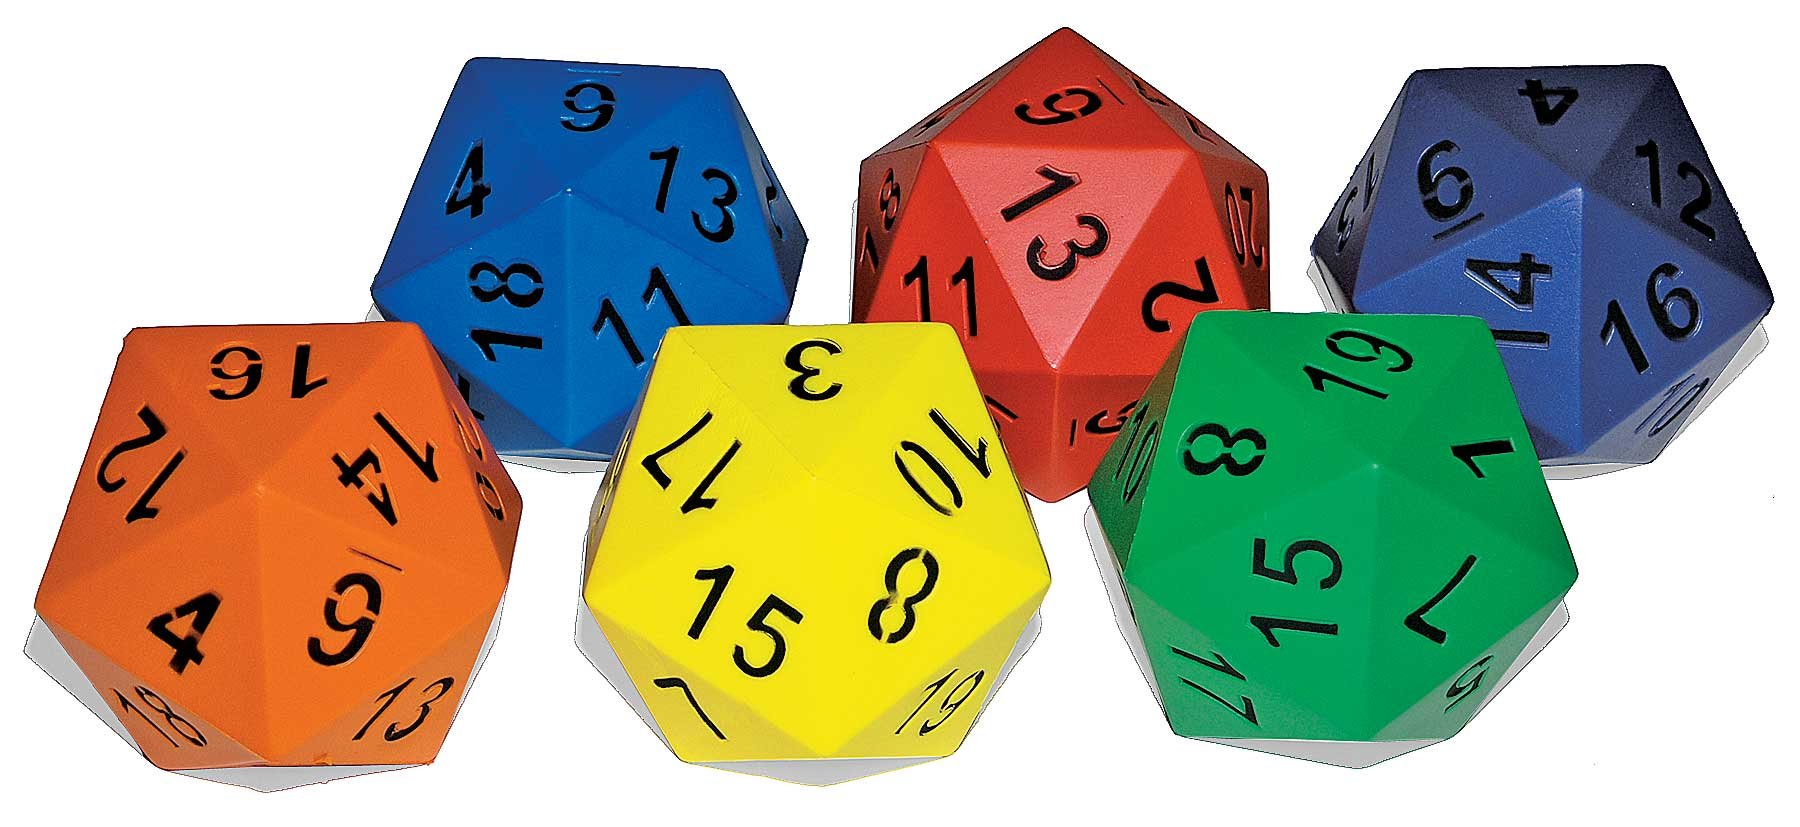 Great Lakes Sports Large (Hand Size) 20 Sided Foam Dice (Sold as a Set of 6) by Great Lakes Sports (Image #1)